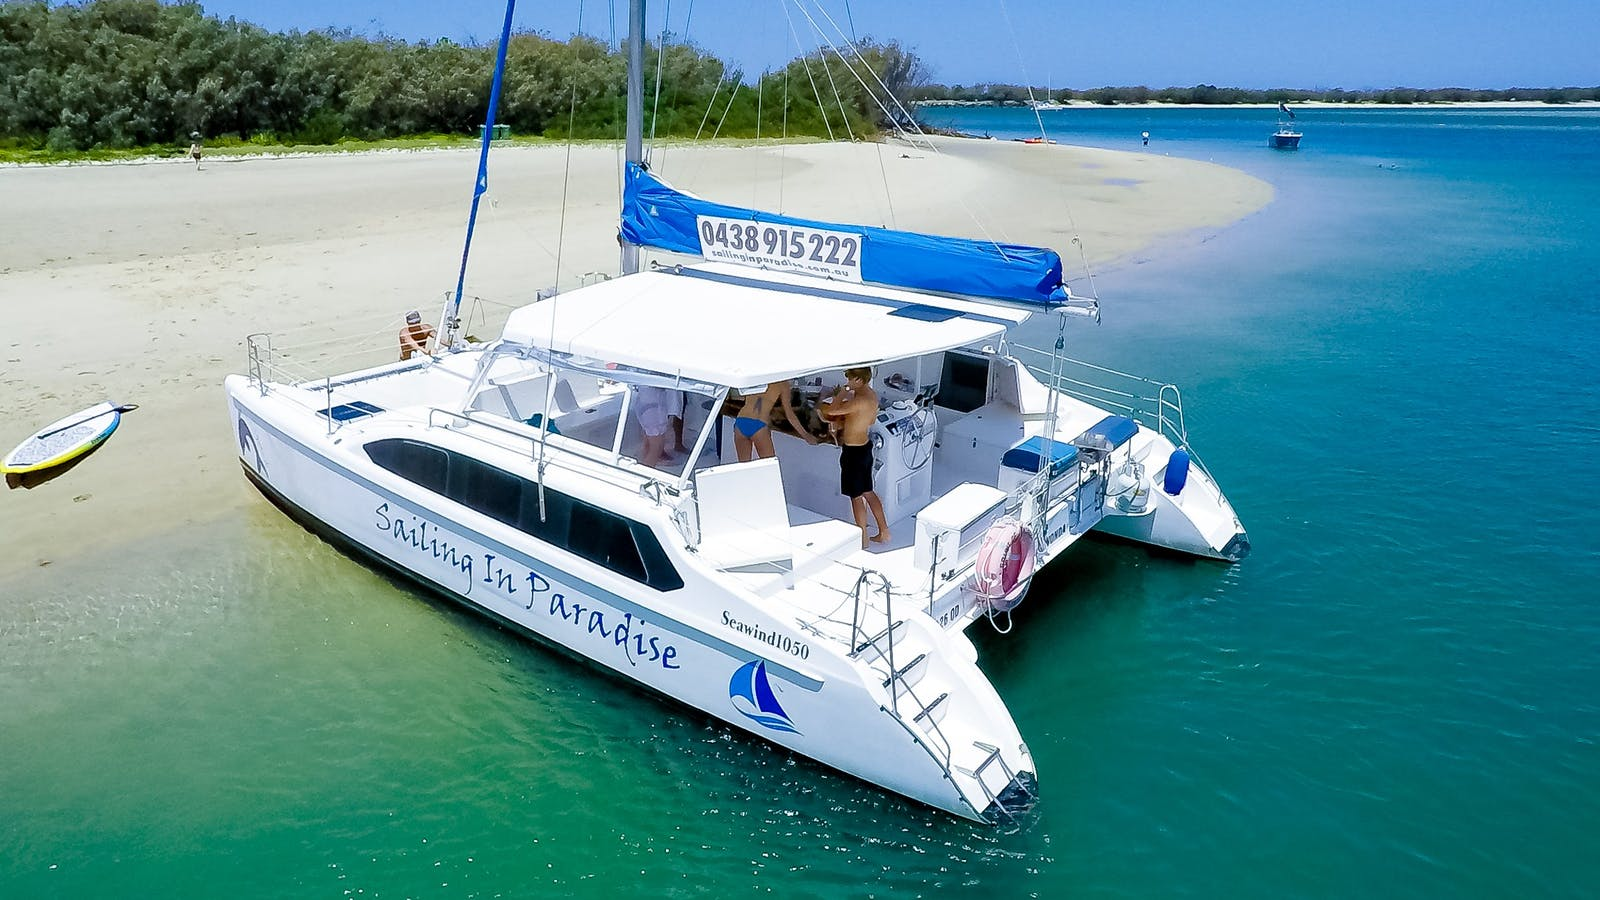 Private boat hire with Sailing in Paradise